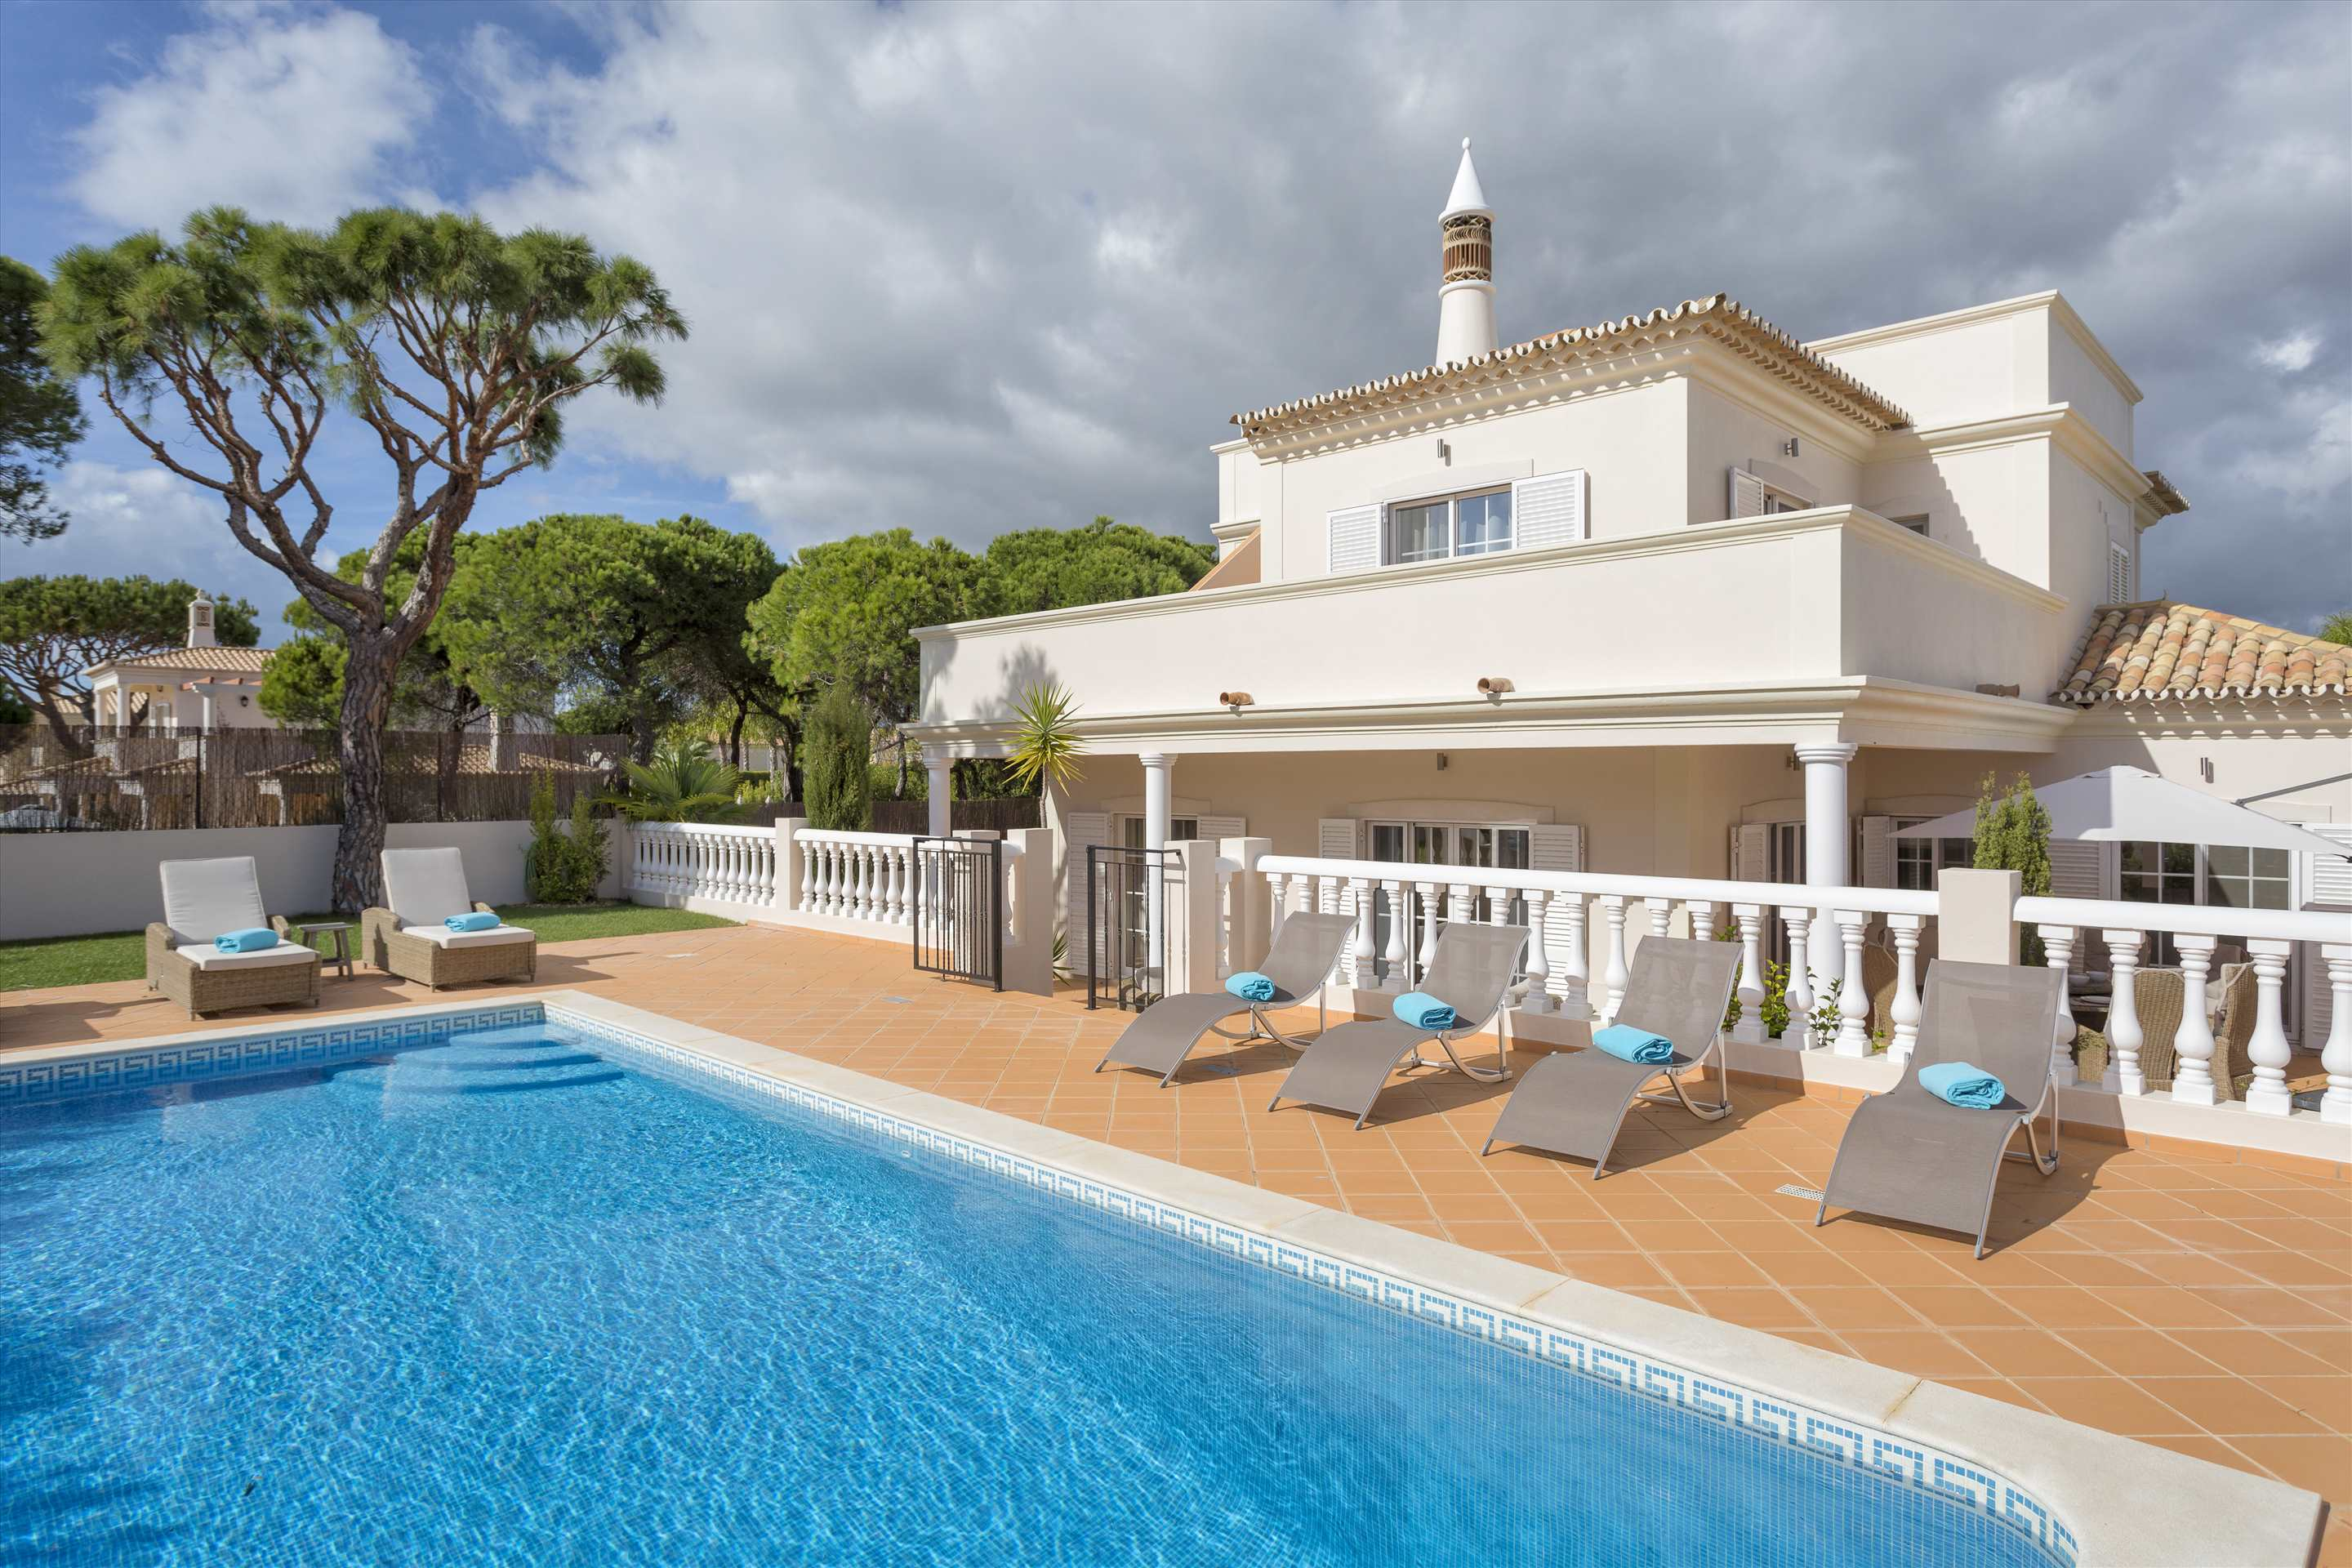 Villa Diana, 4 bedroom villa in Vale do Lobo, Algarve